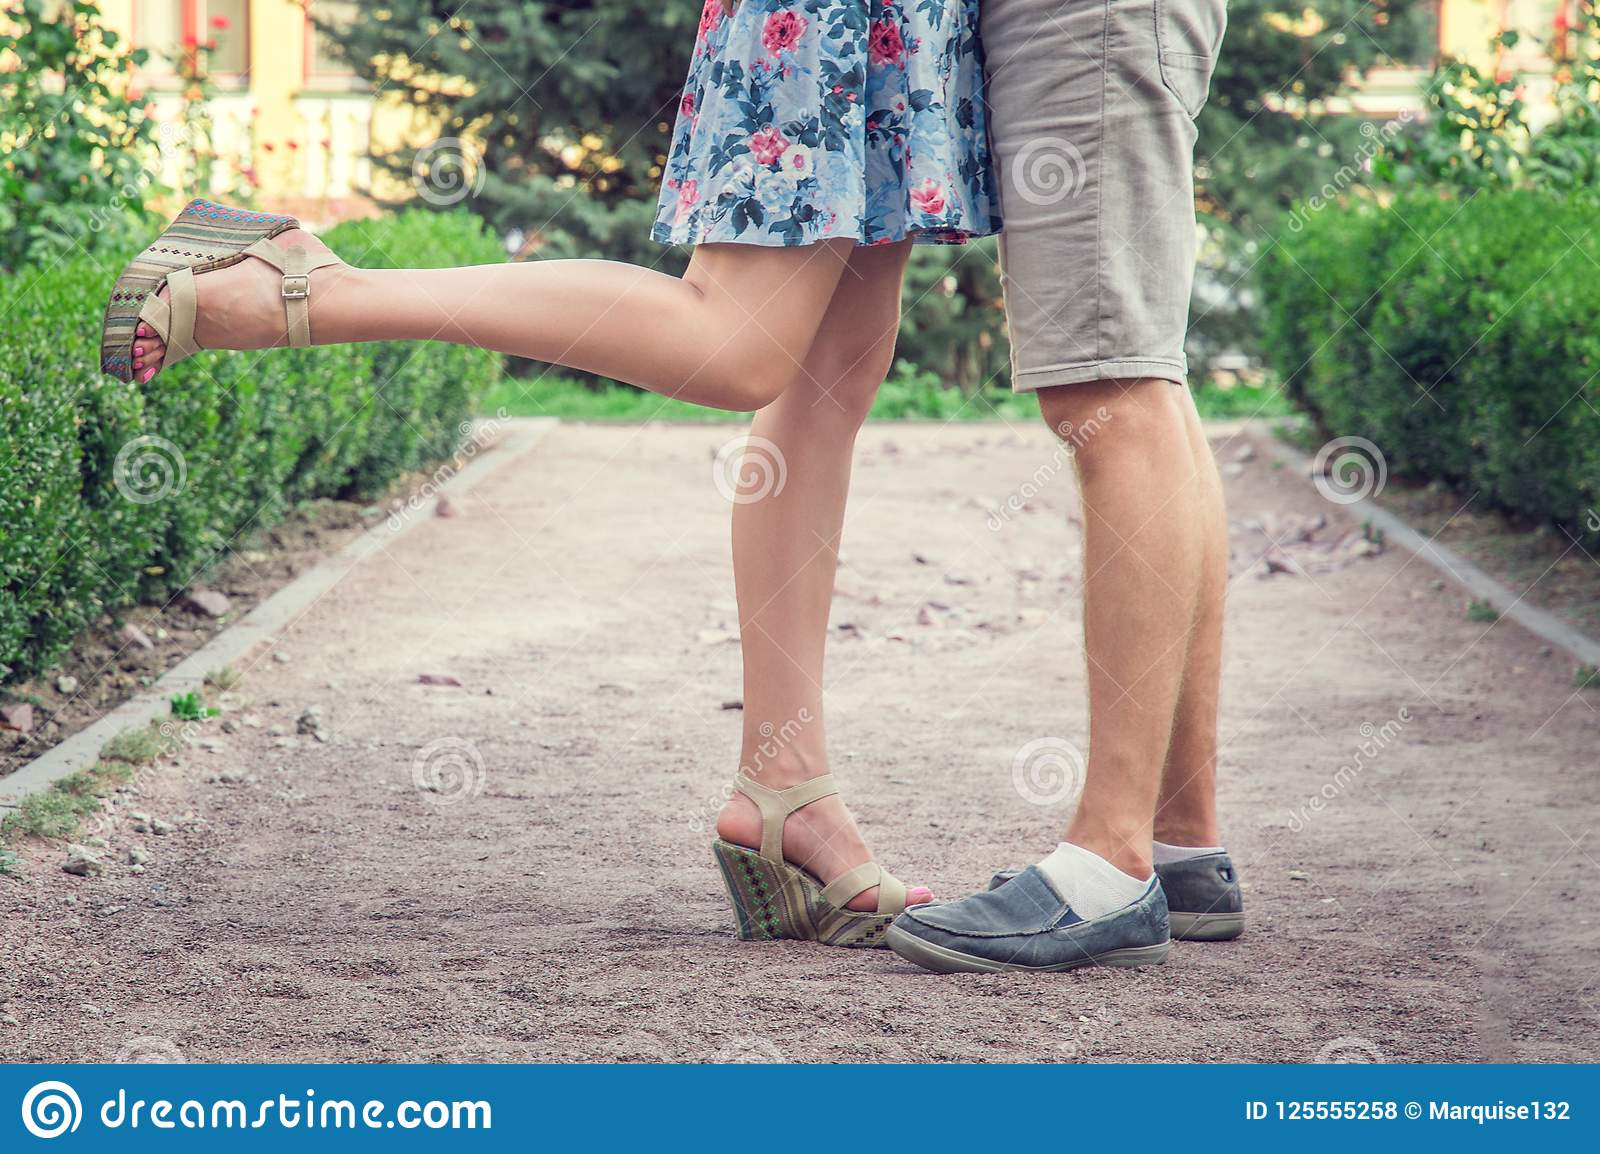 Close the legs of young men and women during a romantic date in a green garden.